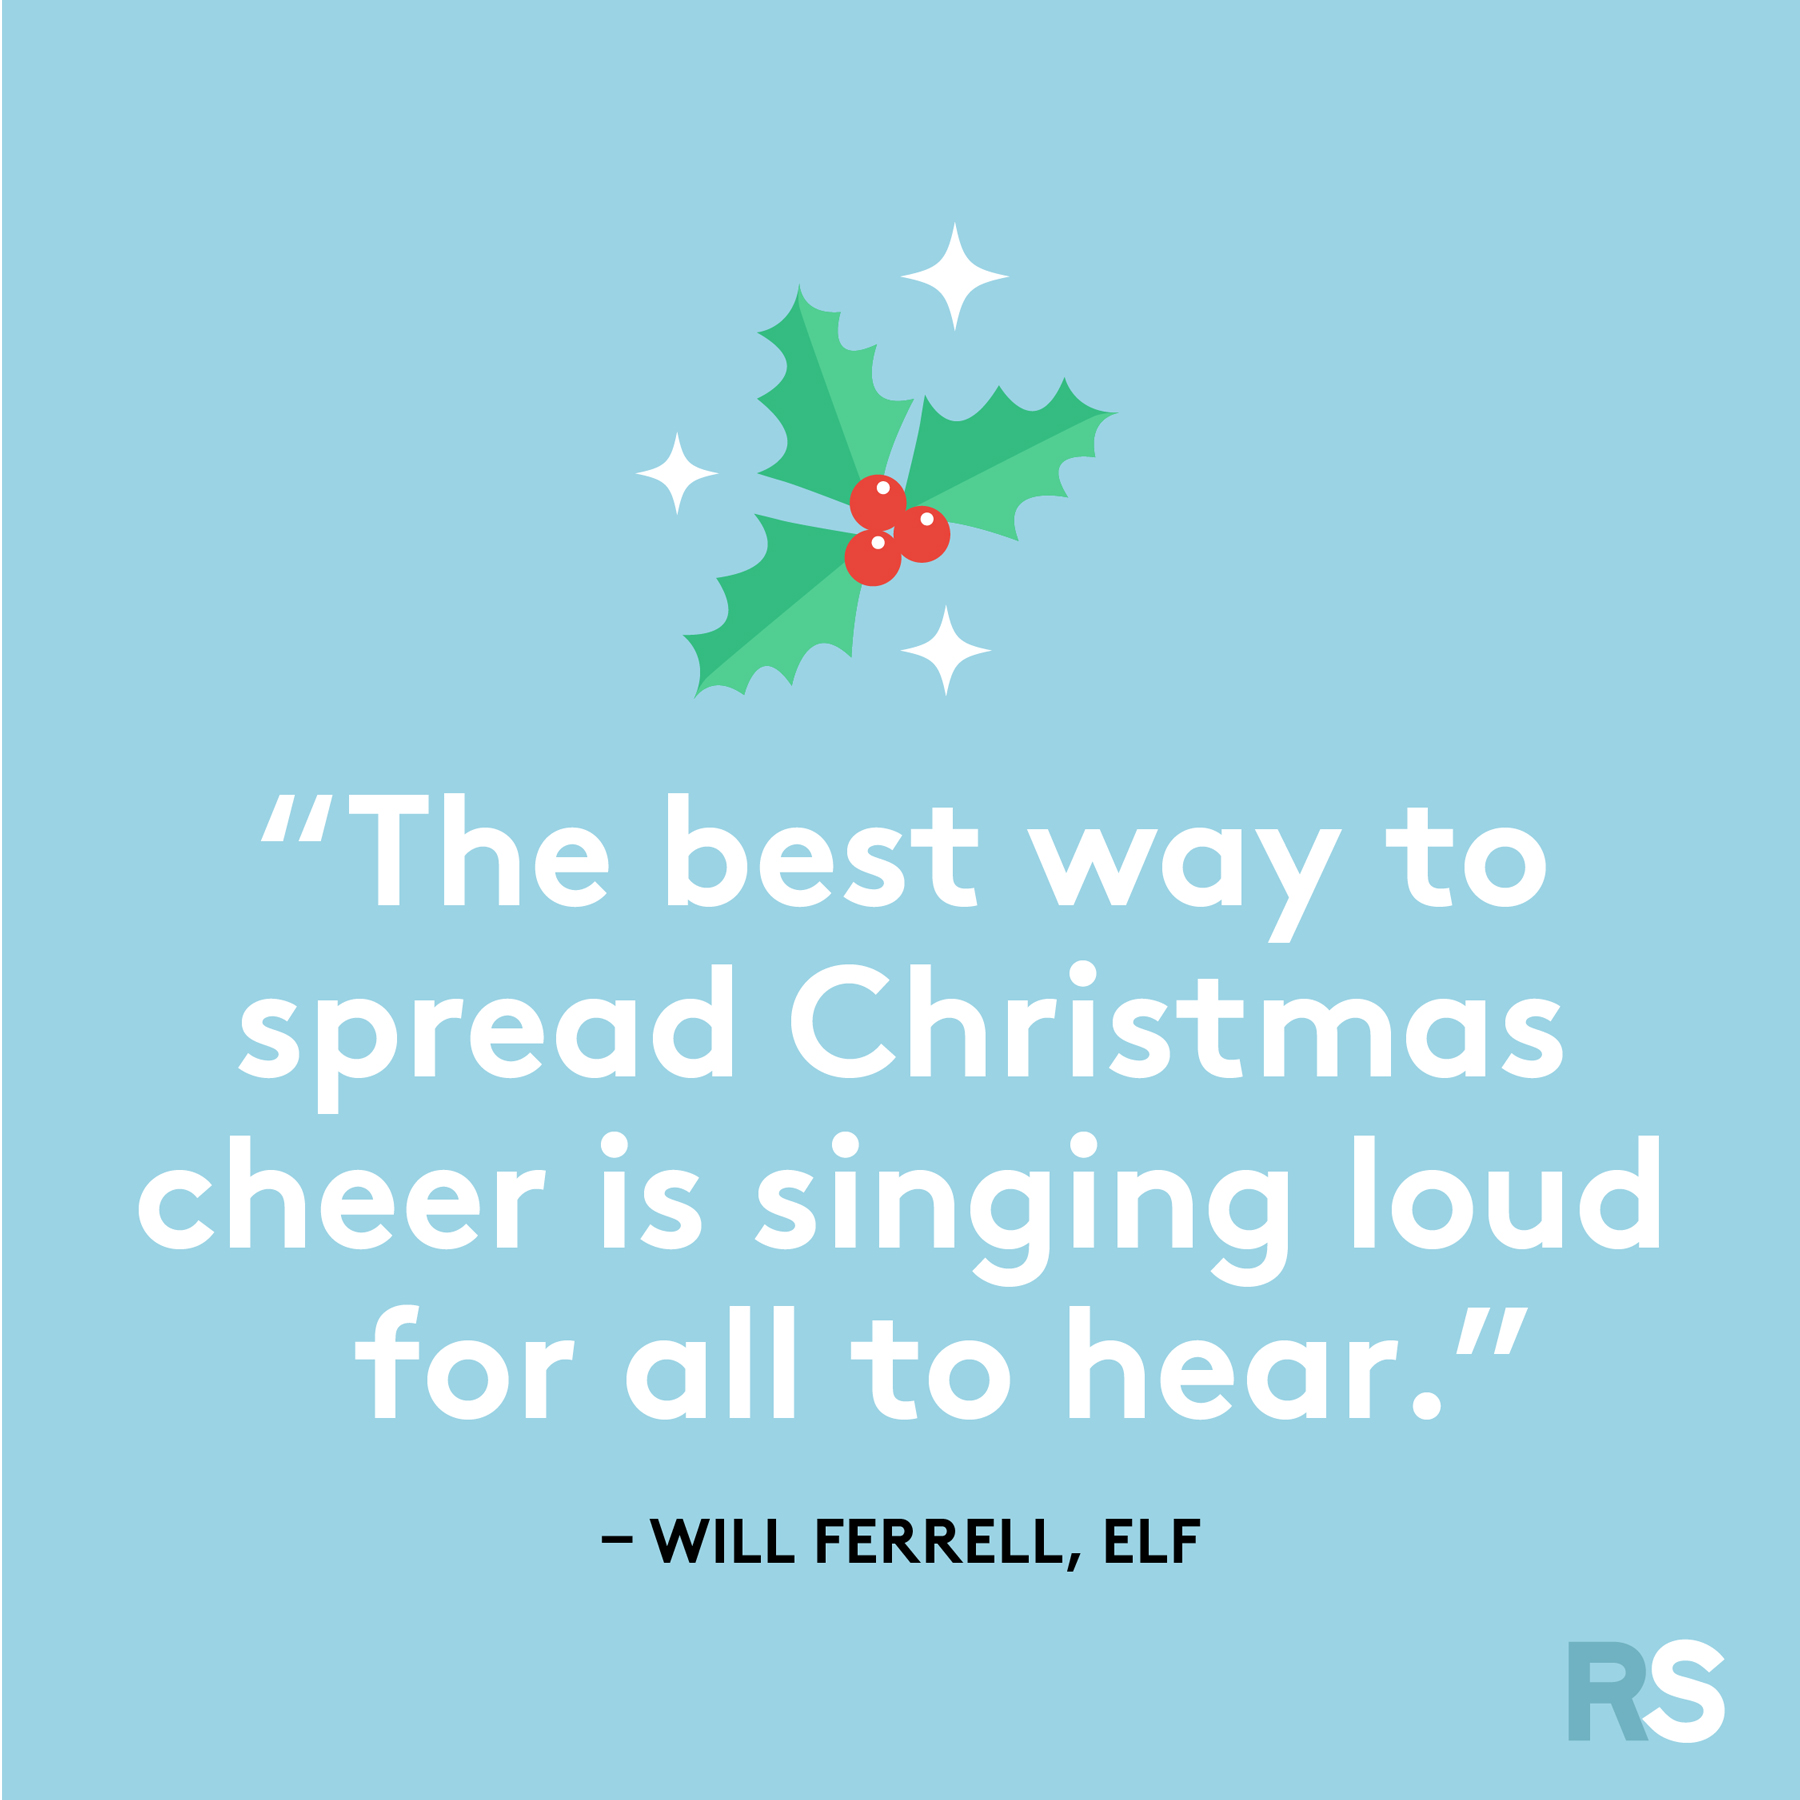 Best Christmas quotes - Will Ferrell, Elf